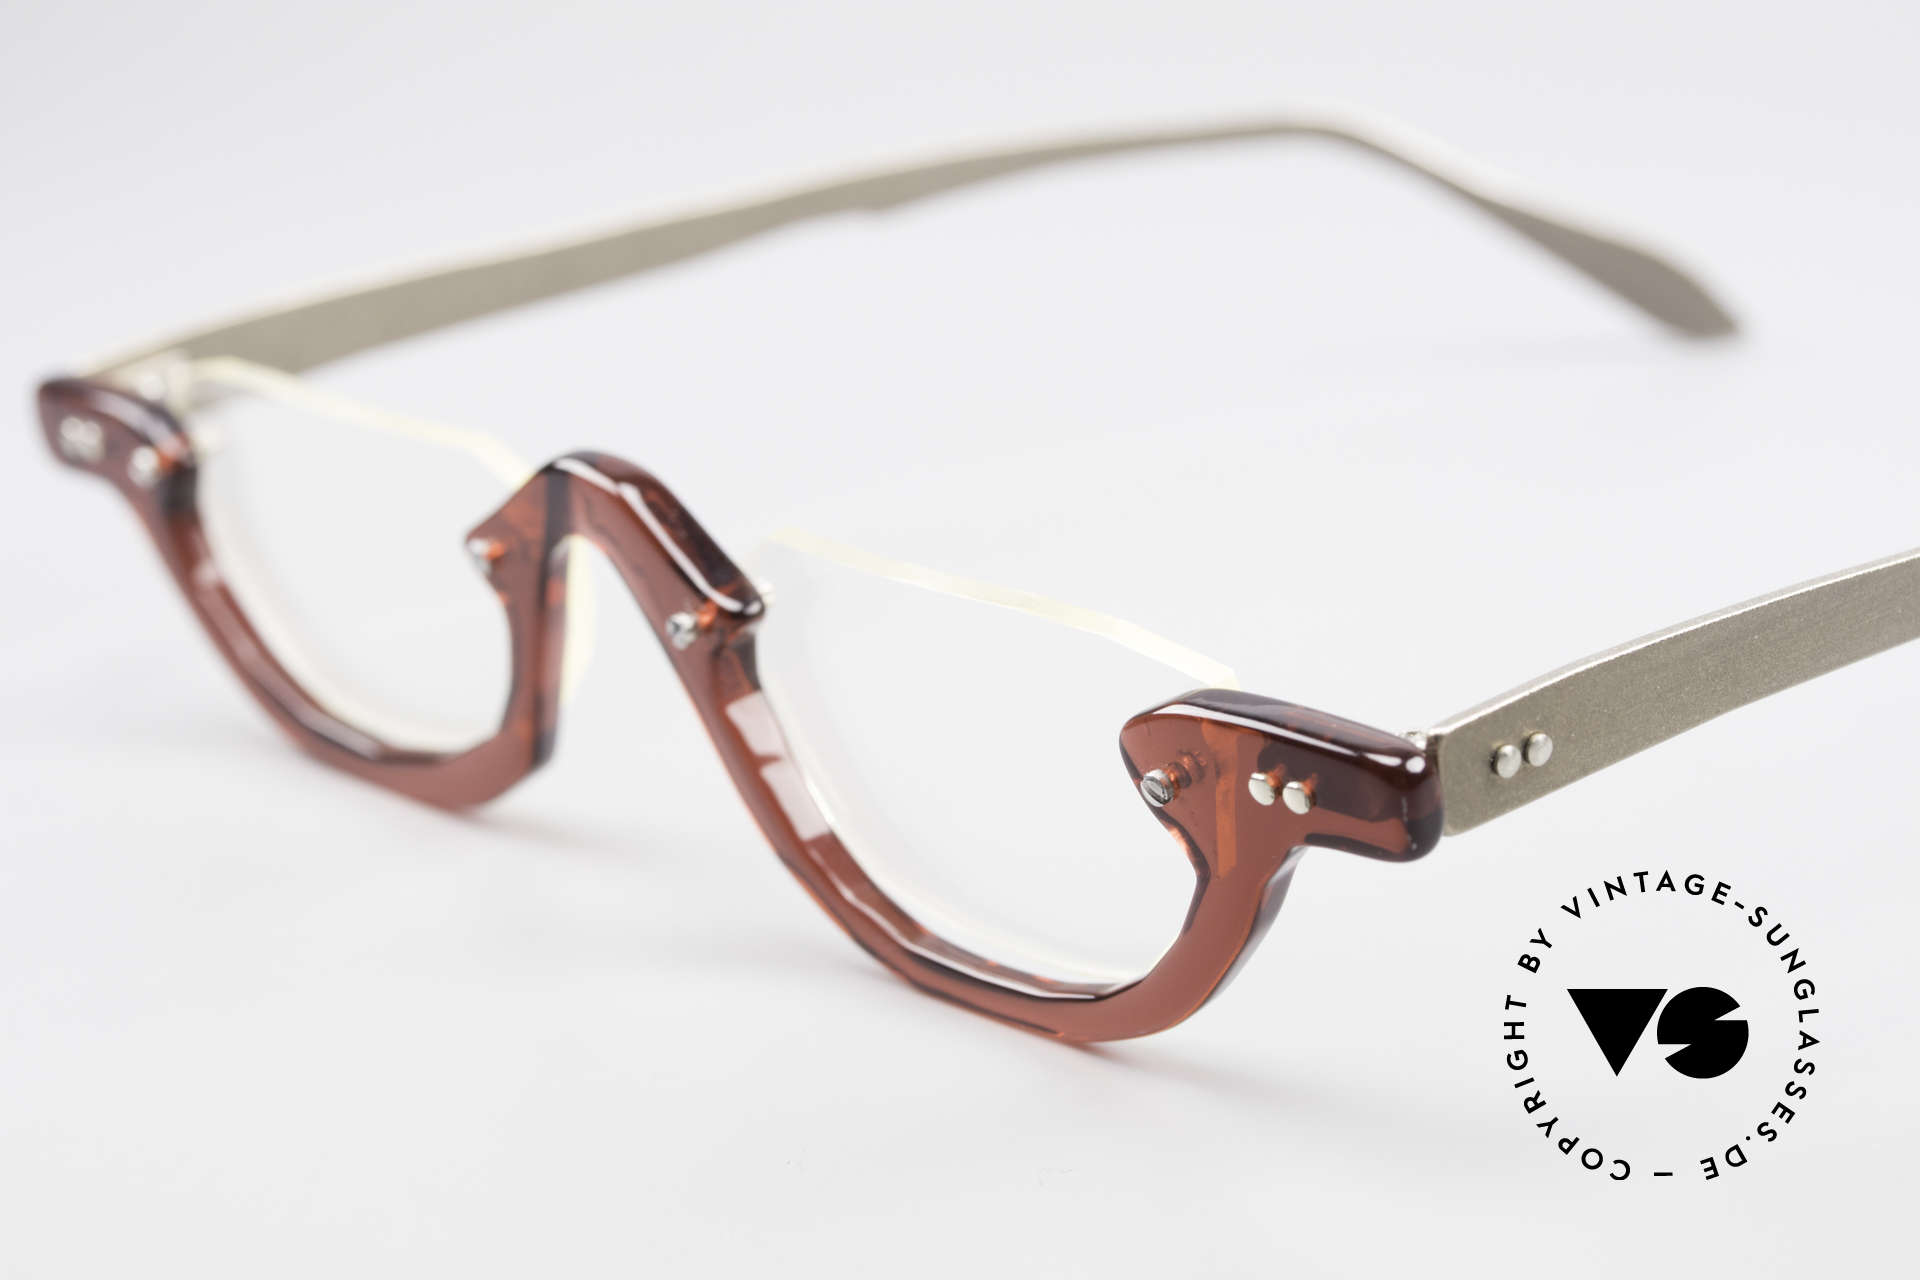 Theo Belgium Eye-Witness AE27 Crazy Reading Eyeglasses, the fancy 'Eye-Witness' series was launched in May '95, Made for Men and Women